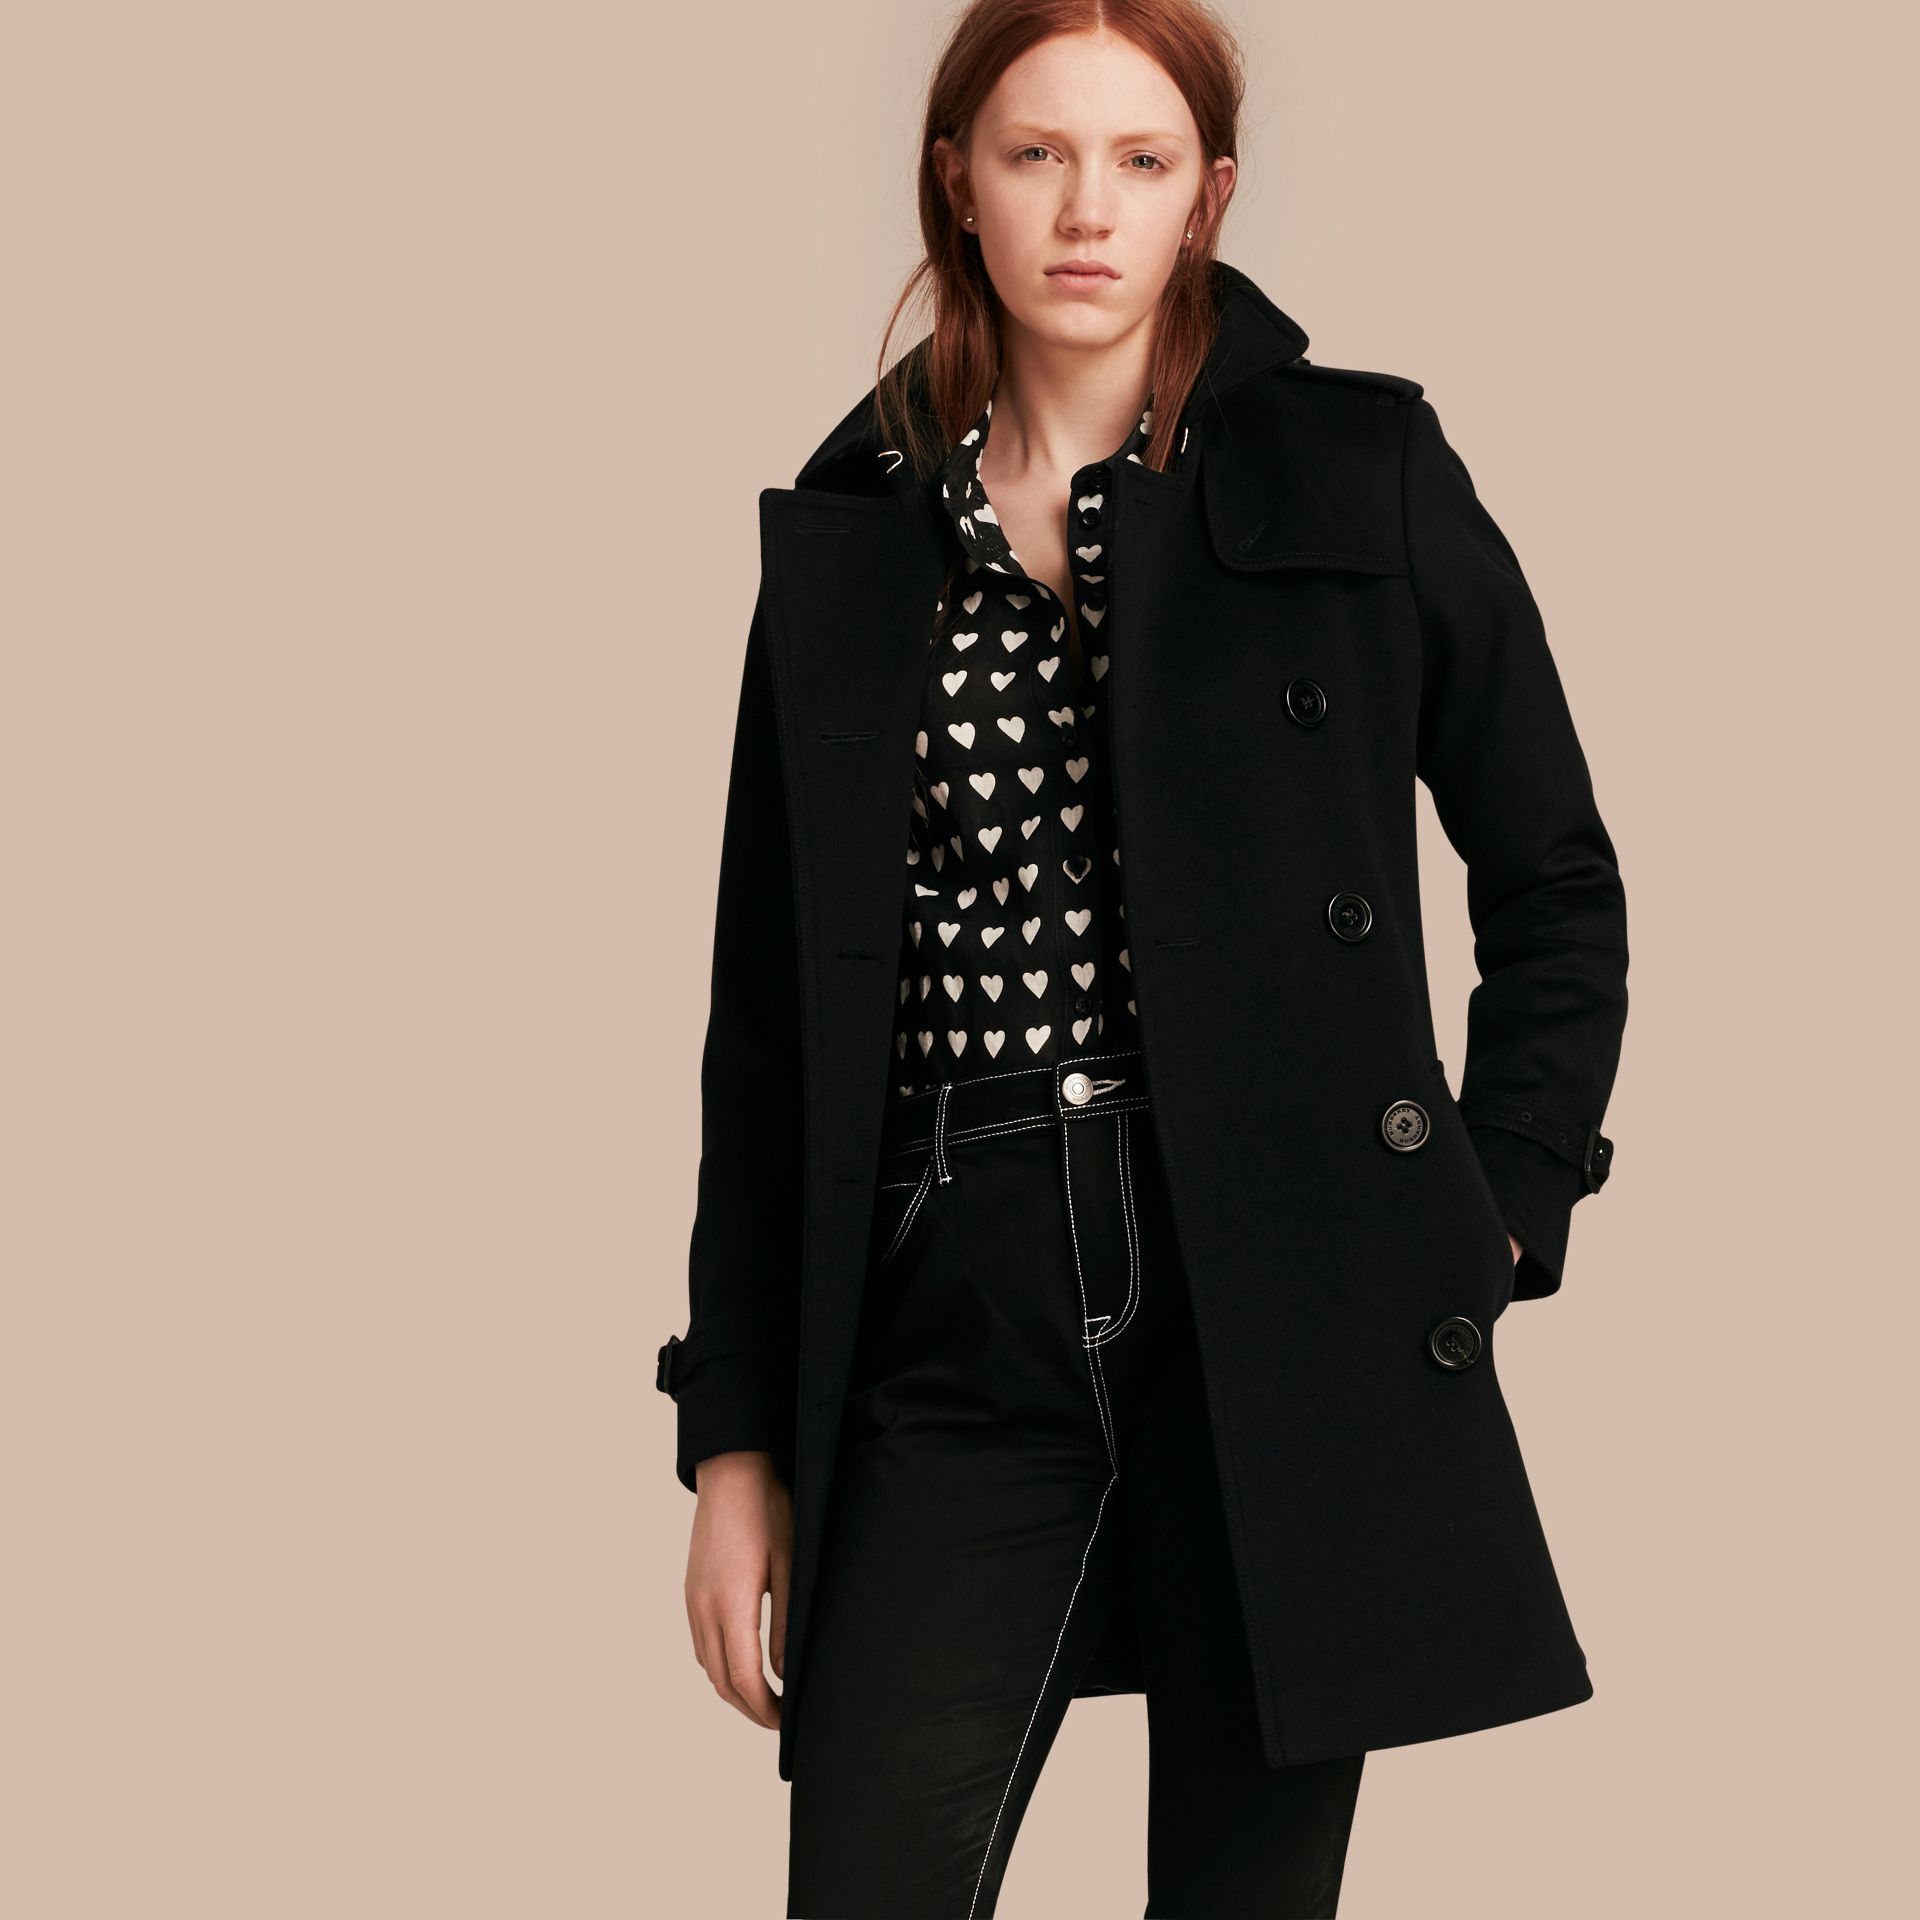 Wool Cashmere Trench Coat in Black - Women | Burberry - gallery image 1